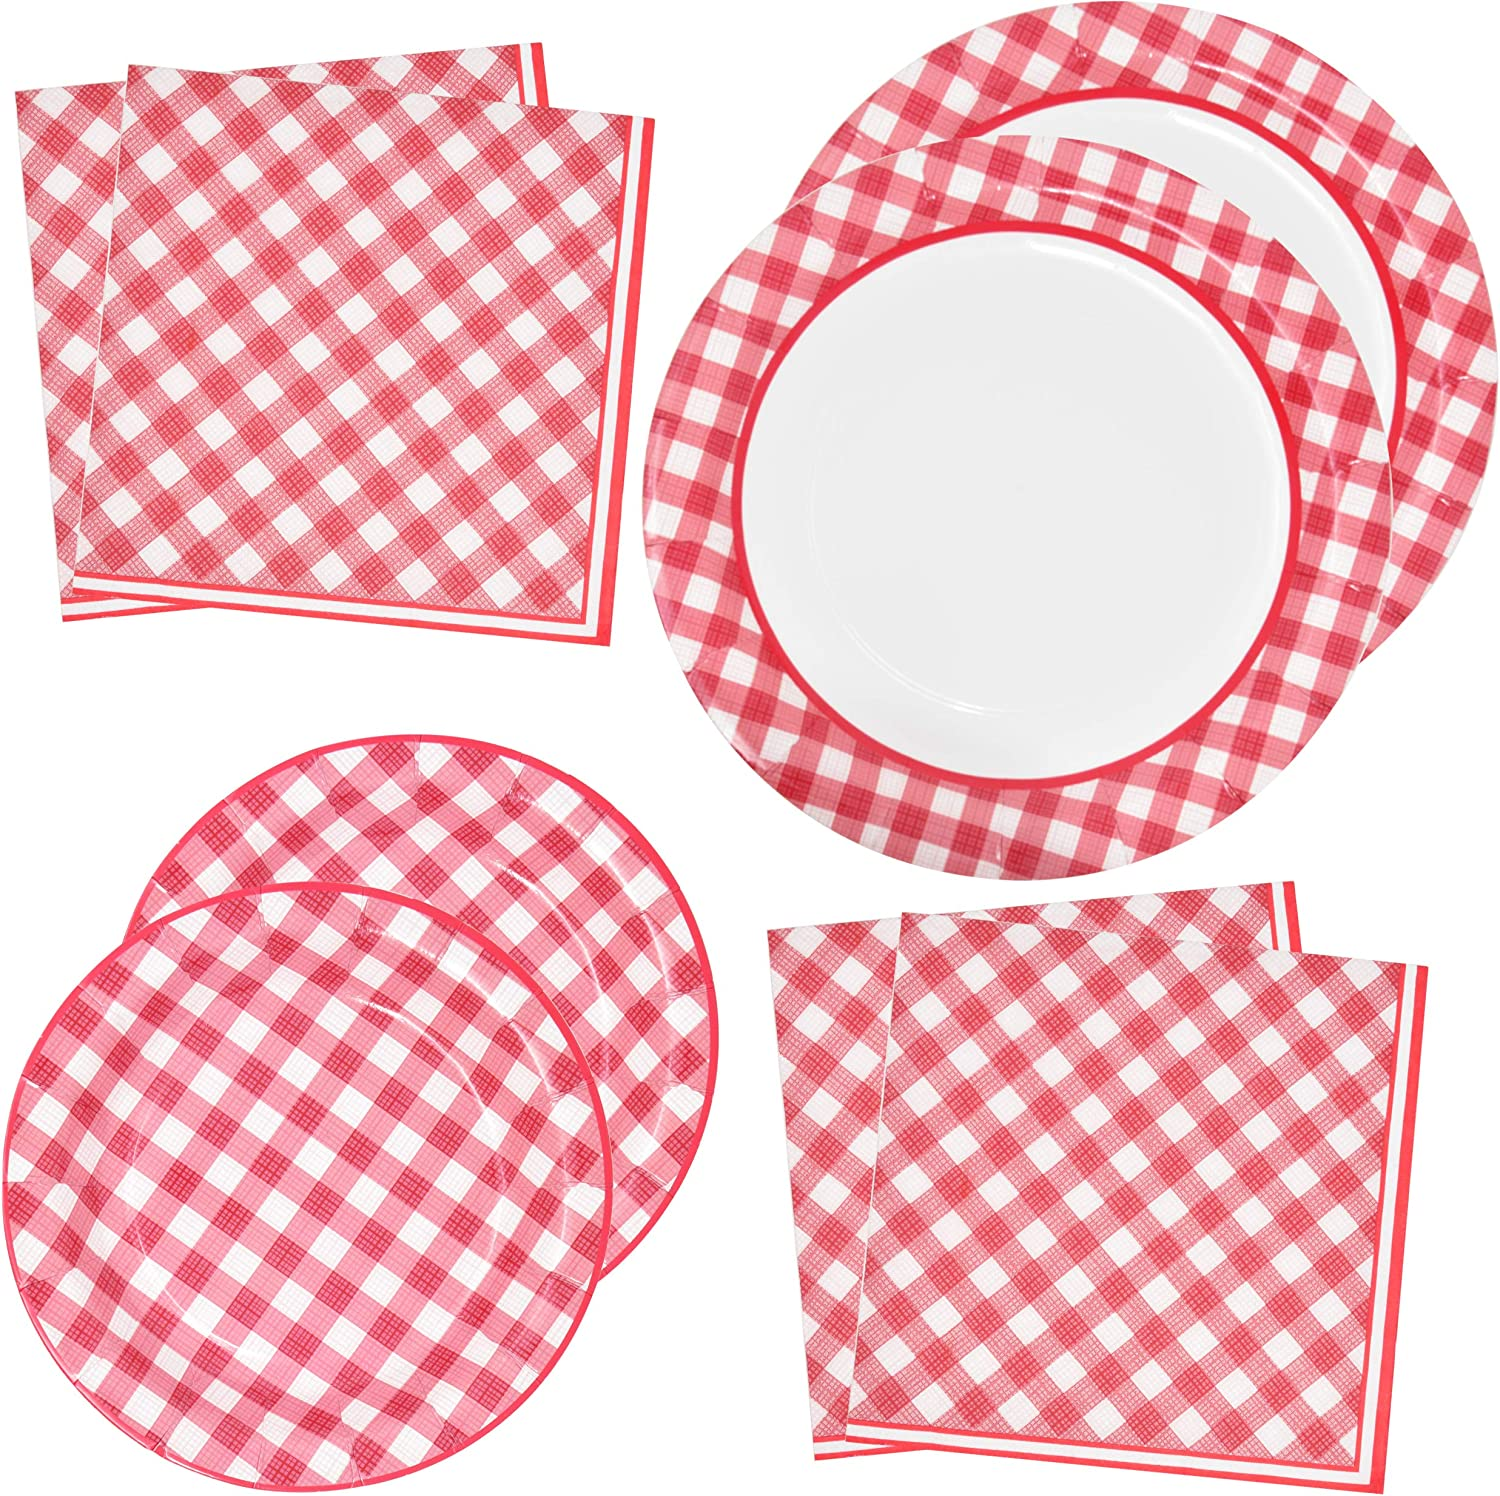 "Red Gingham Party Supplies Tableware Set 50 9"" Plates 50 7"" Plate 100 Luncheon Napkin Disposable Dinnerware Paper Goods Red & White Gingham Checkered Plaid Picnic Barbecue Birthday Party Gift Boutique"